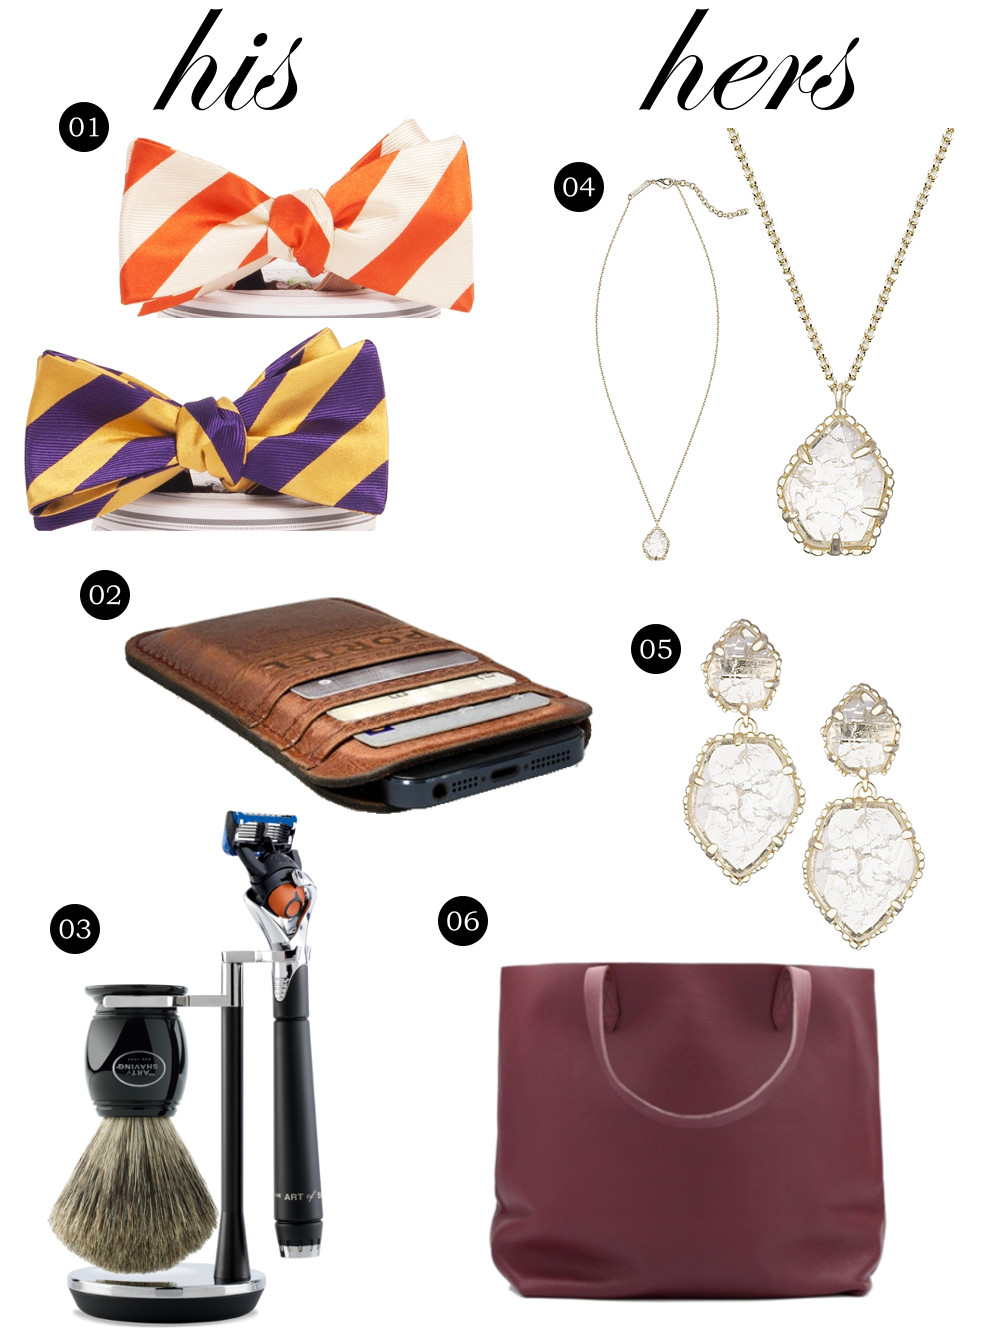 11 17 14 his her gift guide